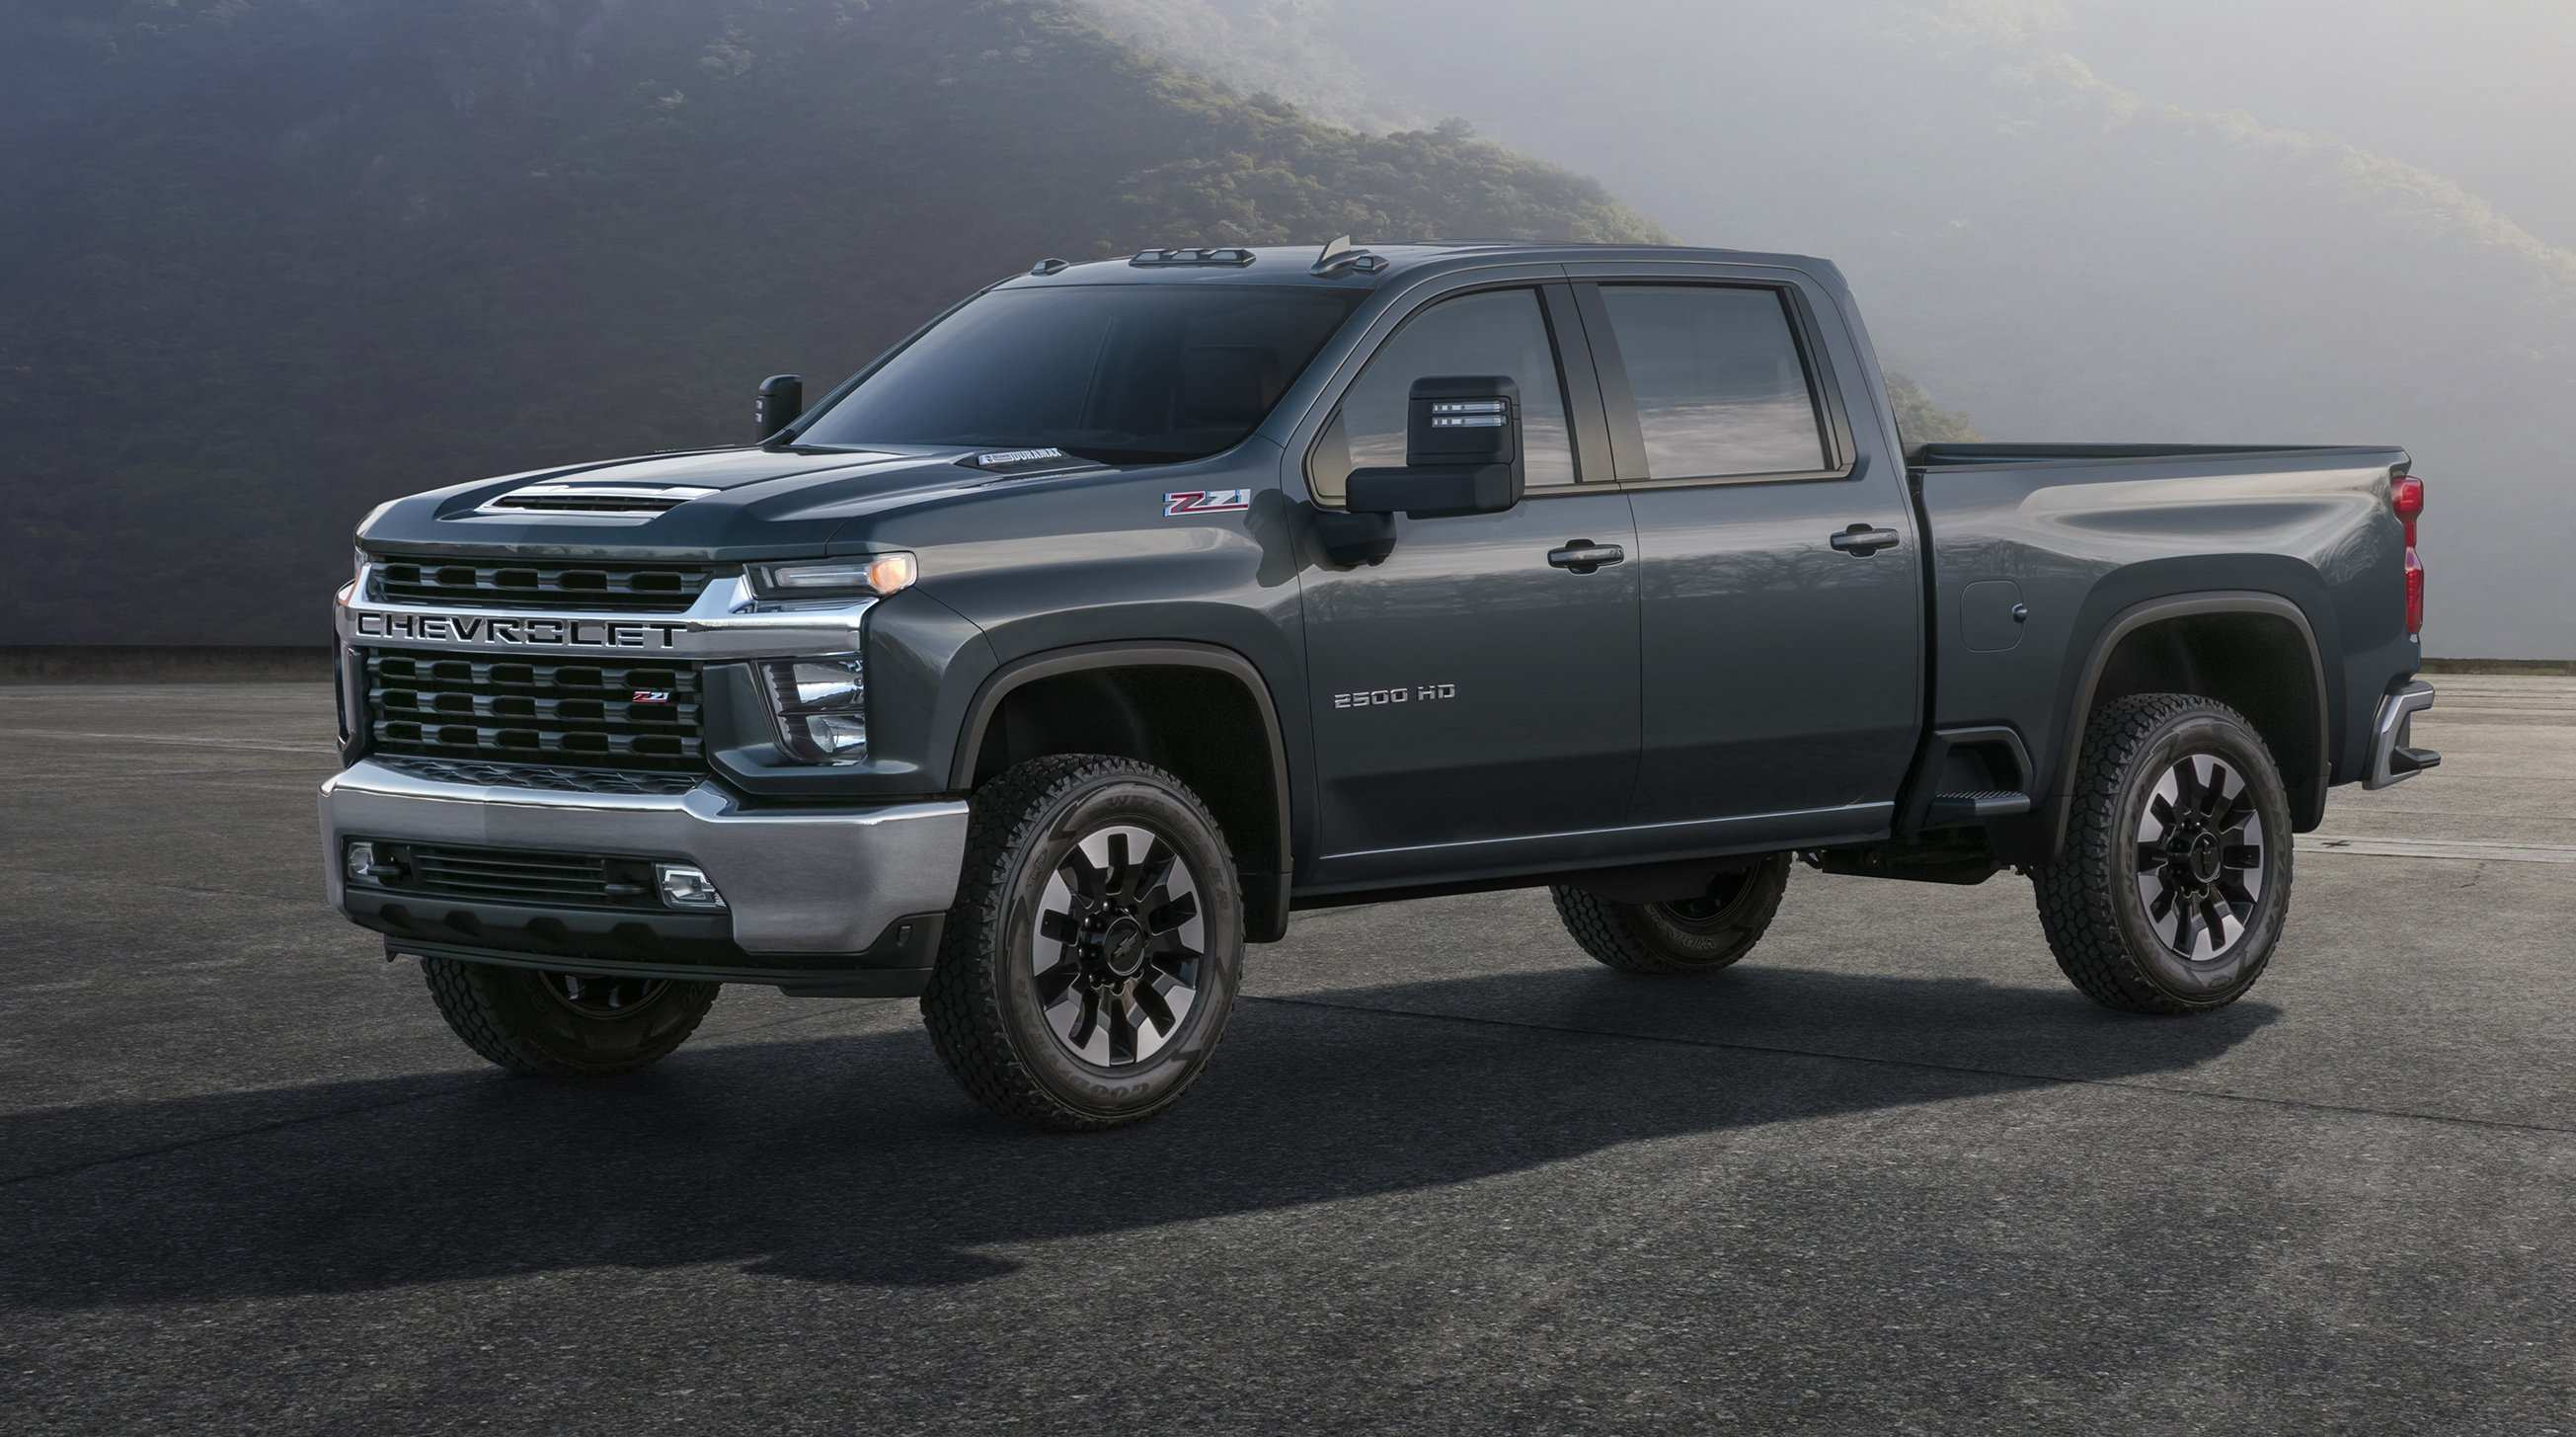 86 New 2020 Chevrolet Silverado 1500 Ld New Concept with 2020 Chevrolet Silverado 1500 Ld